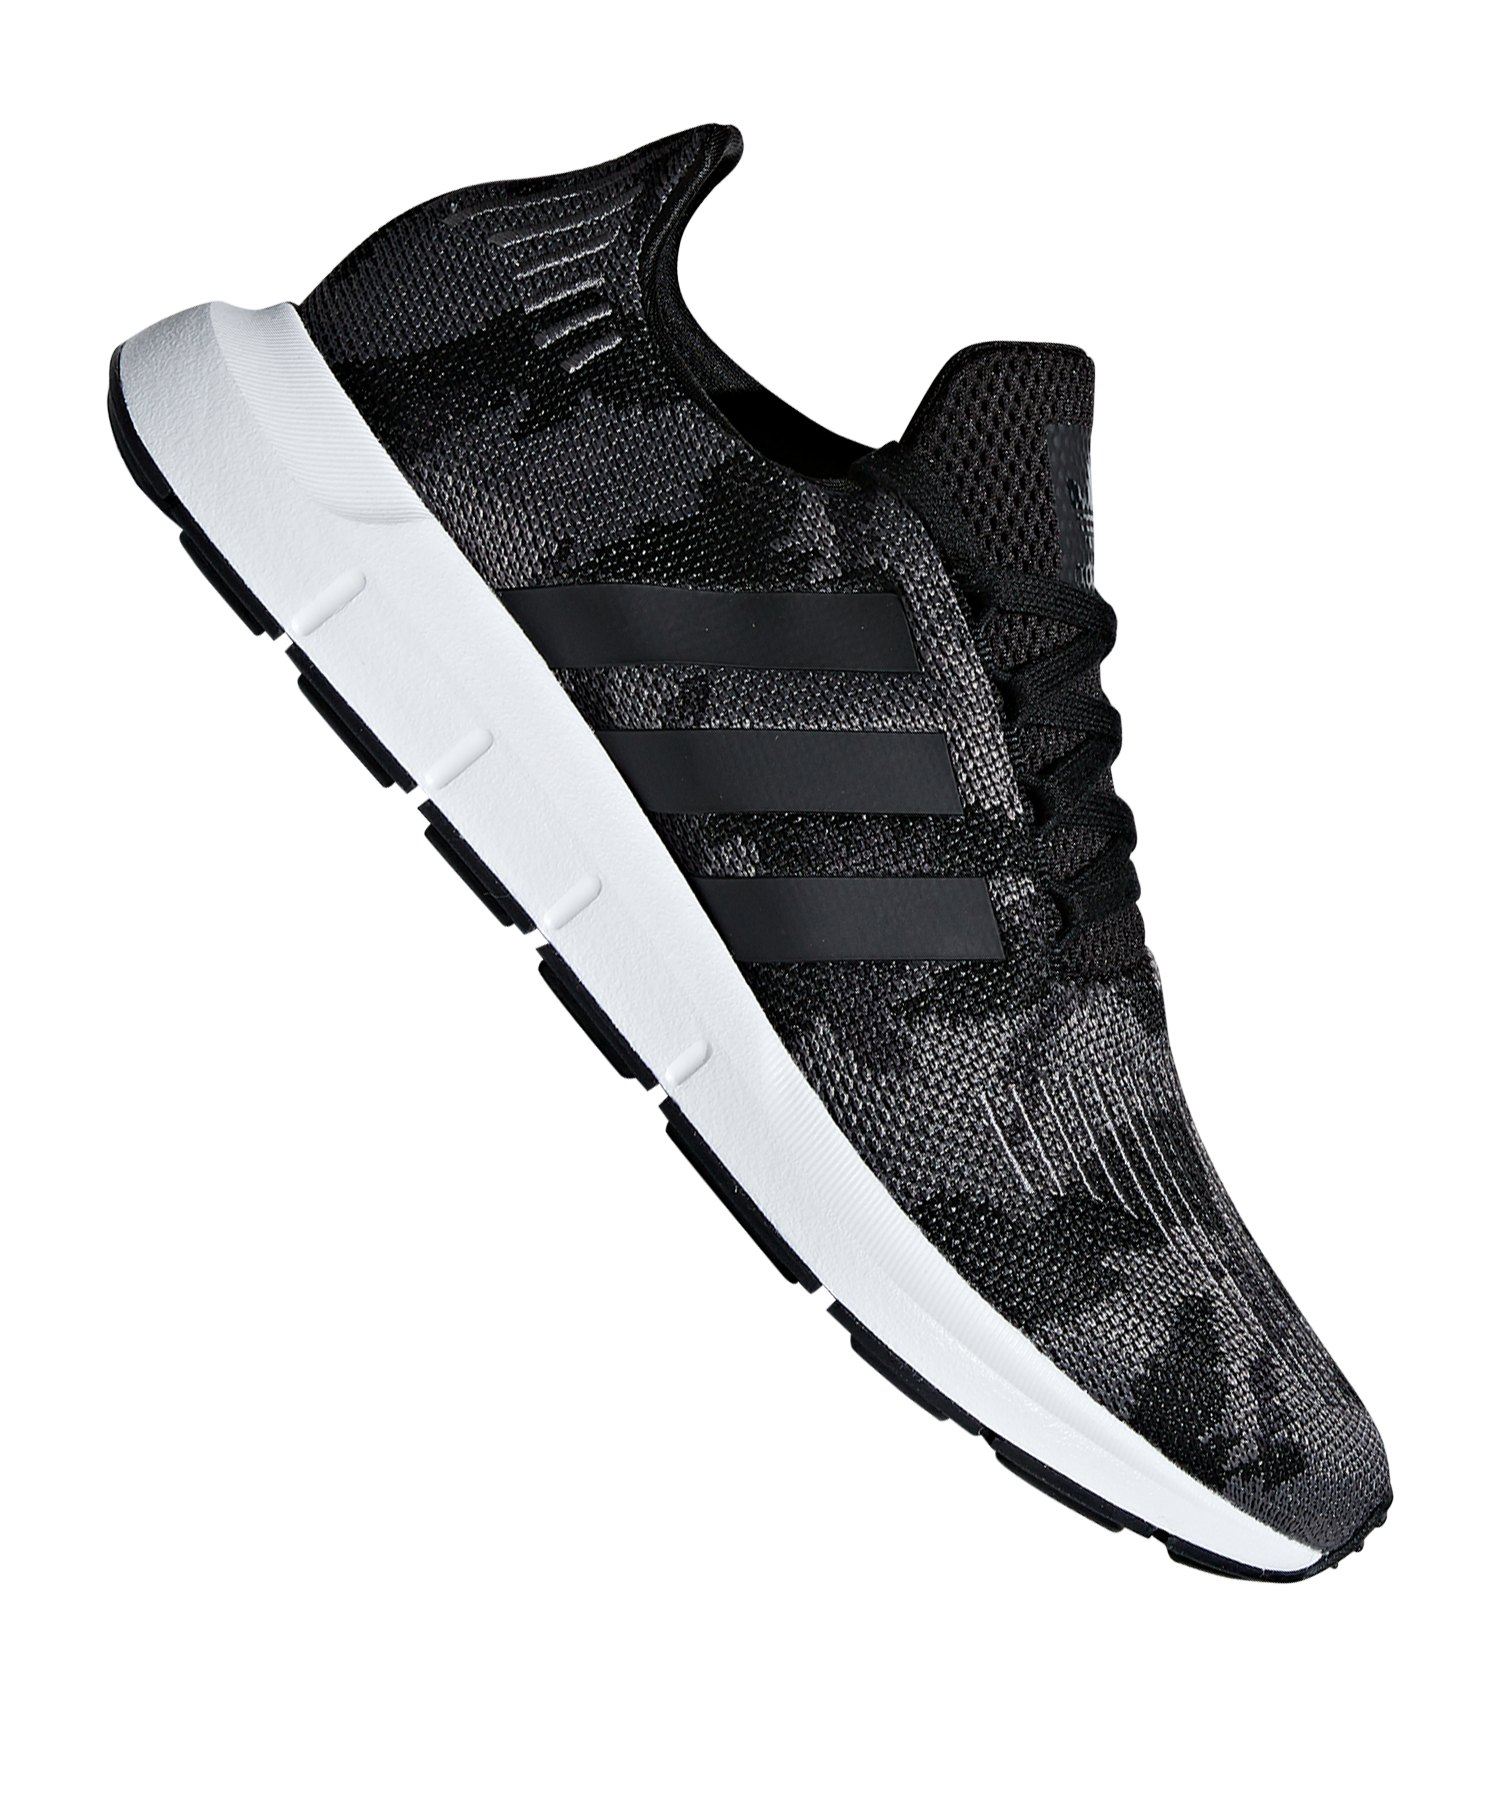 adidas Originals Swift Run Sneaker Grau Schwarz